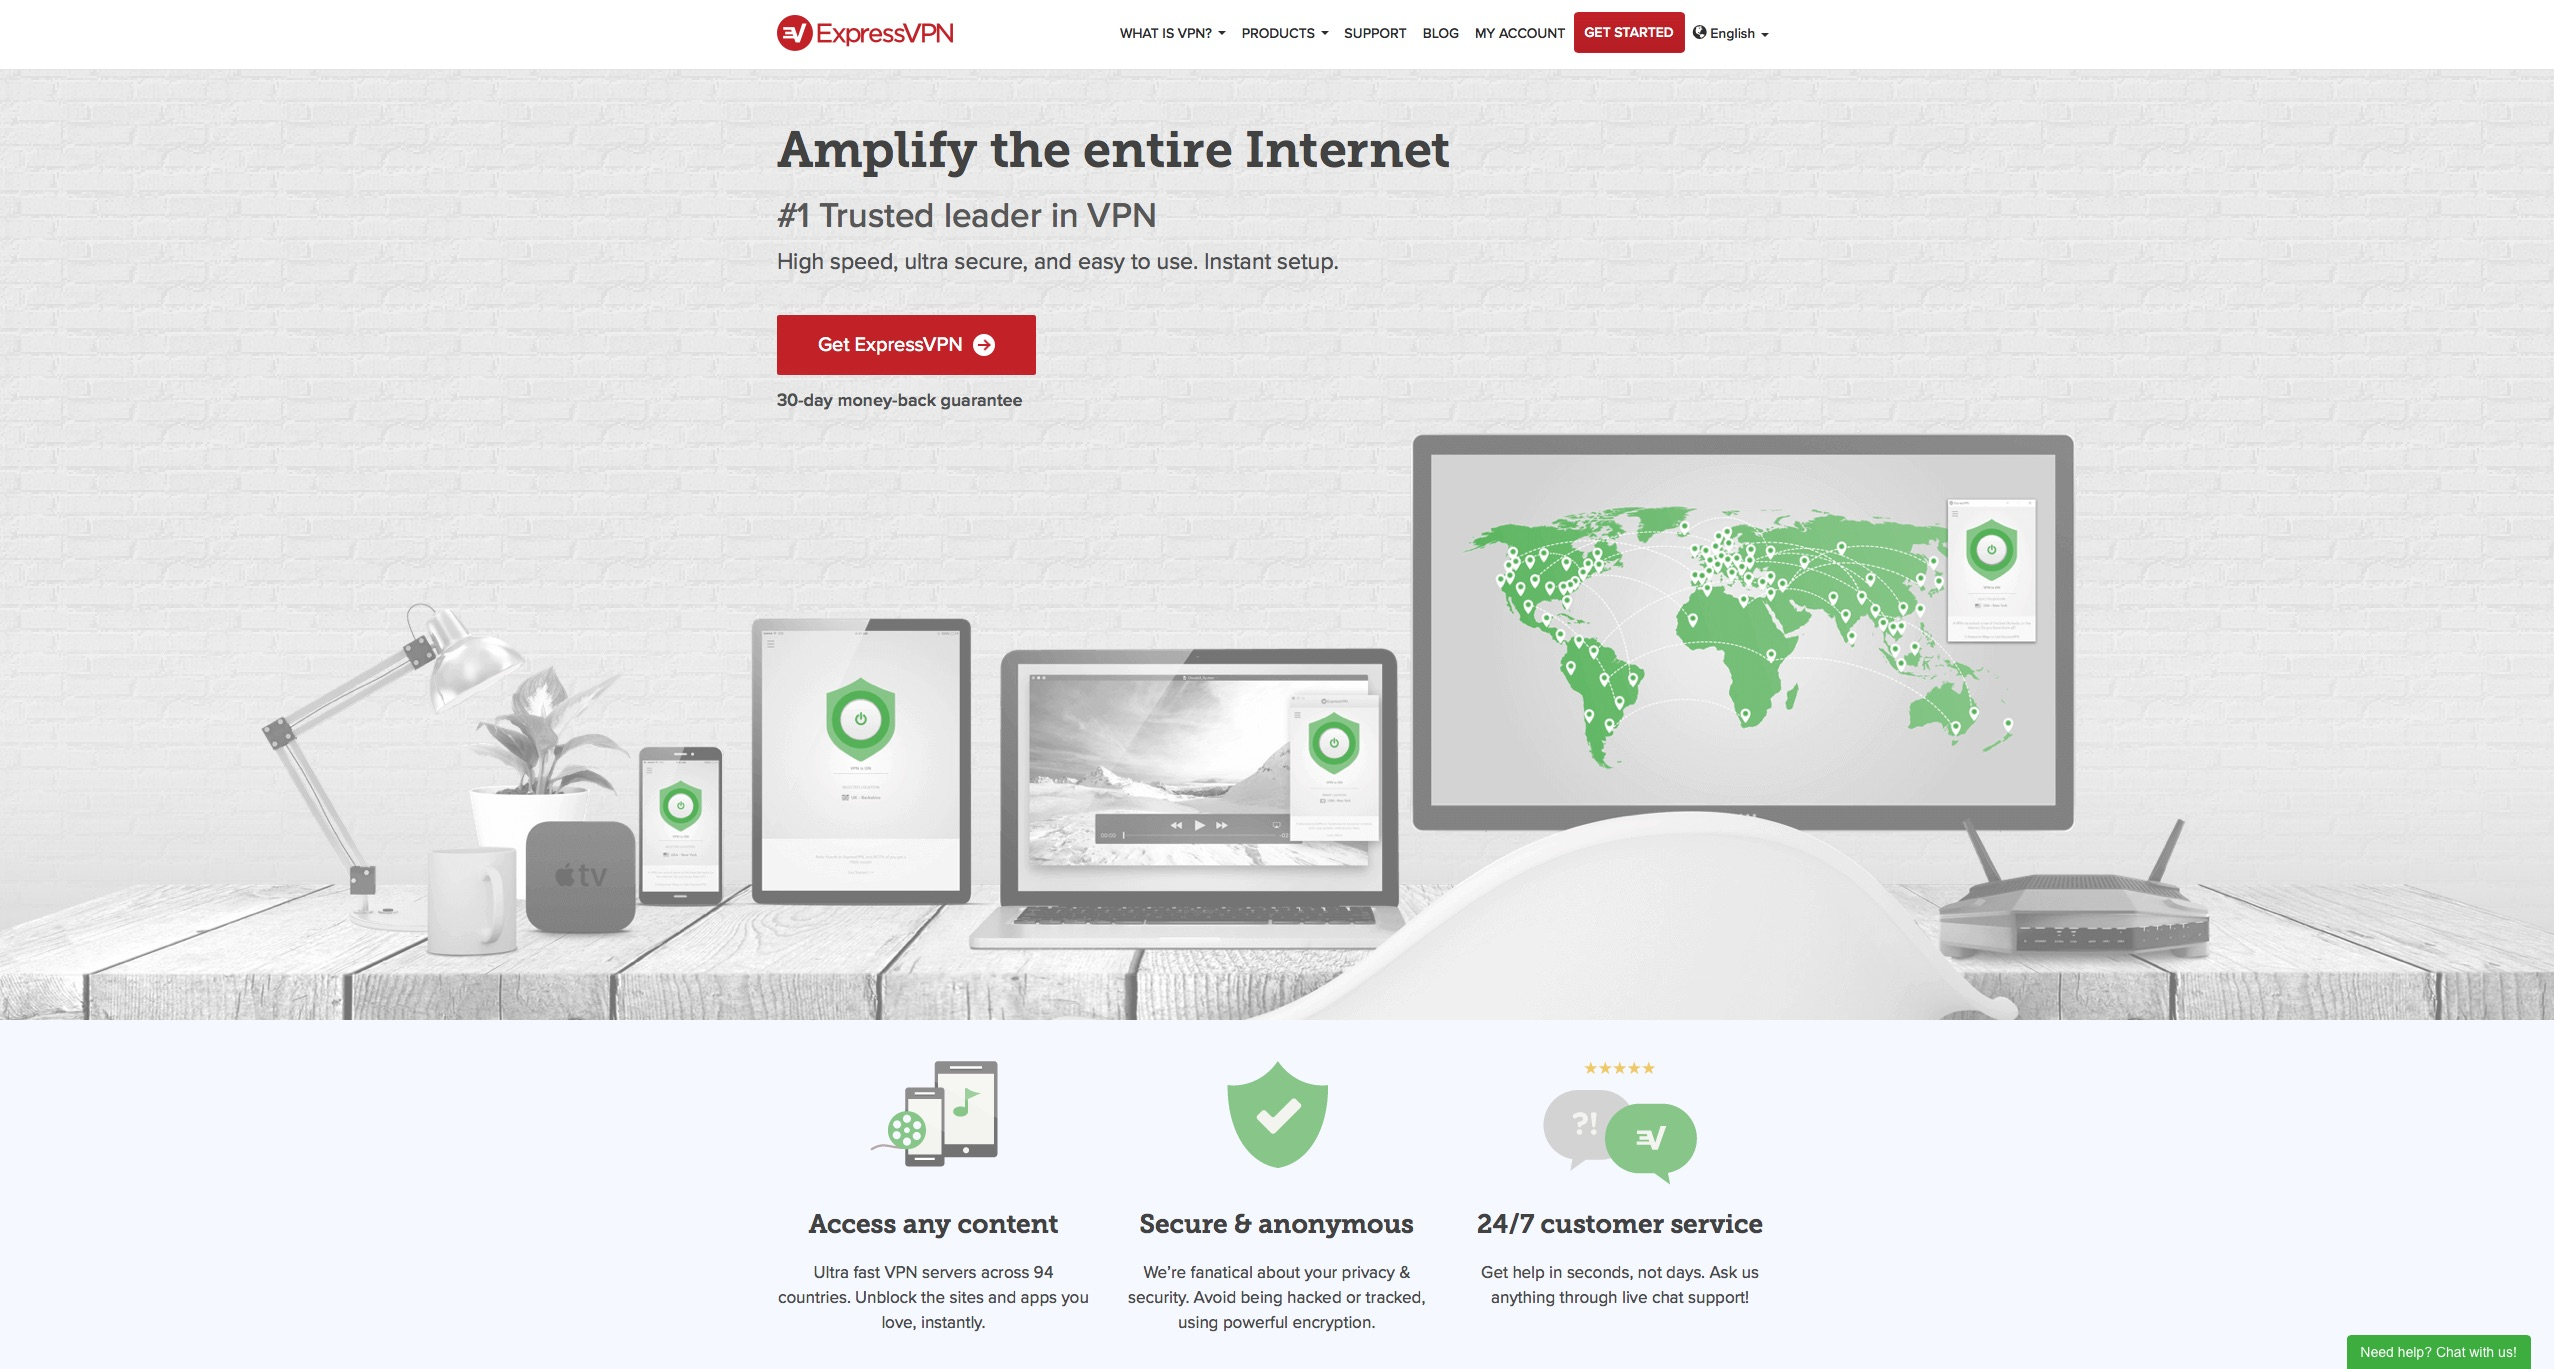 ExpressVPN Review - Is it best choice for you? - VPNTrends com